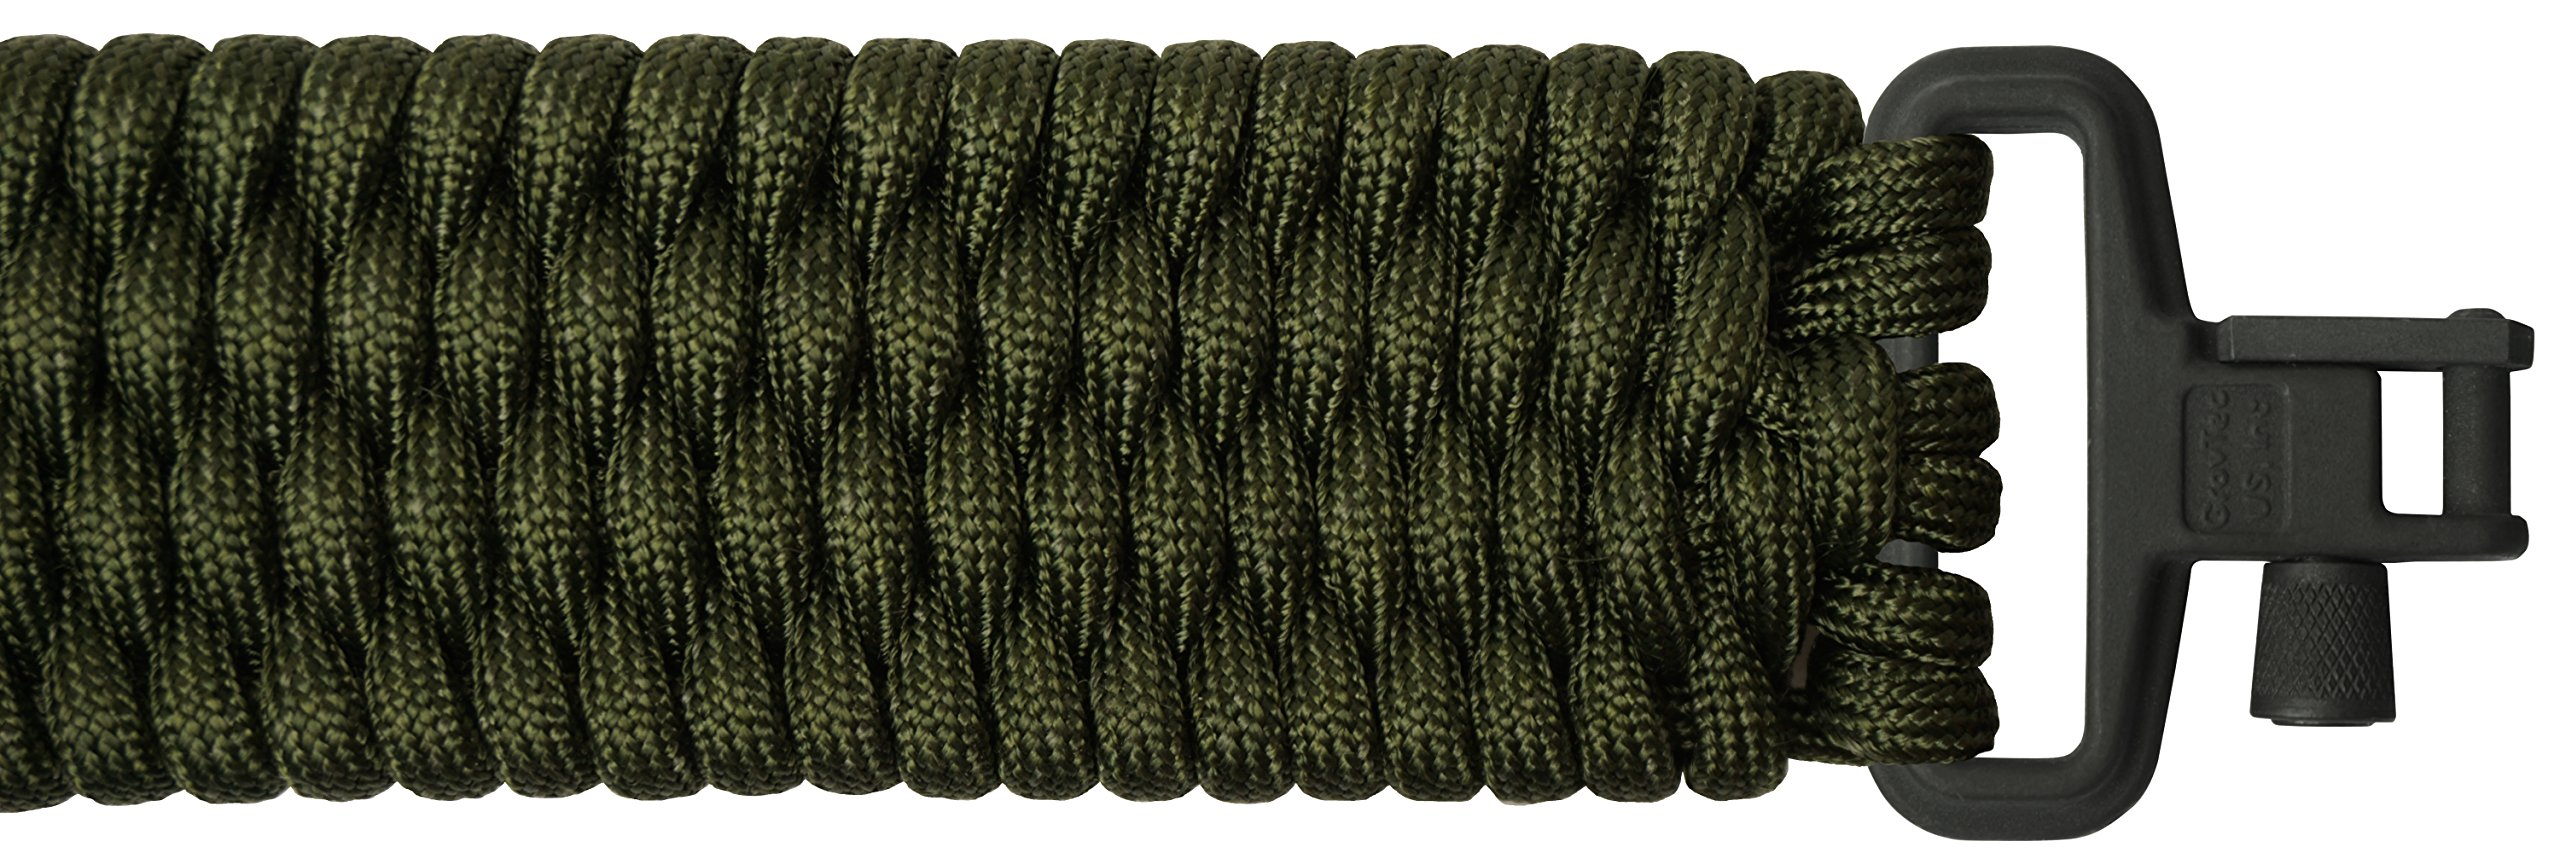 TOUGH-GRID Backbone(TM) Paracord Rifle Sling - Gun Sling/Rifle Sling - Handmade in The USA with Authentic Mil-Spec 750lb Type IV Paracord and Mil-Spec Swivels (BackBone90CGBoa)